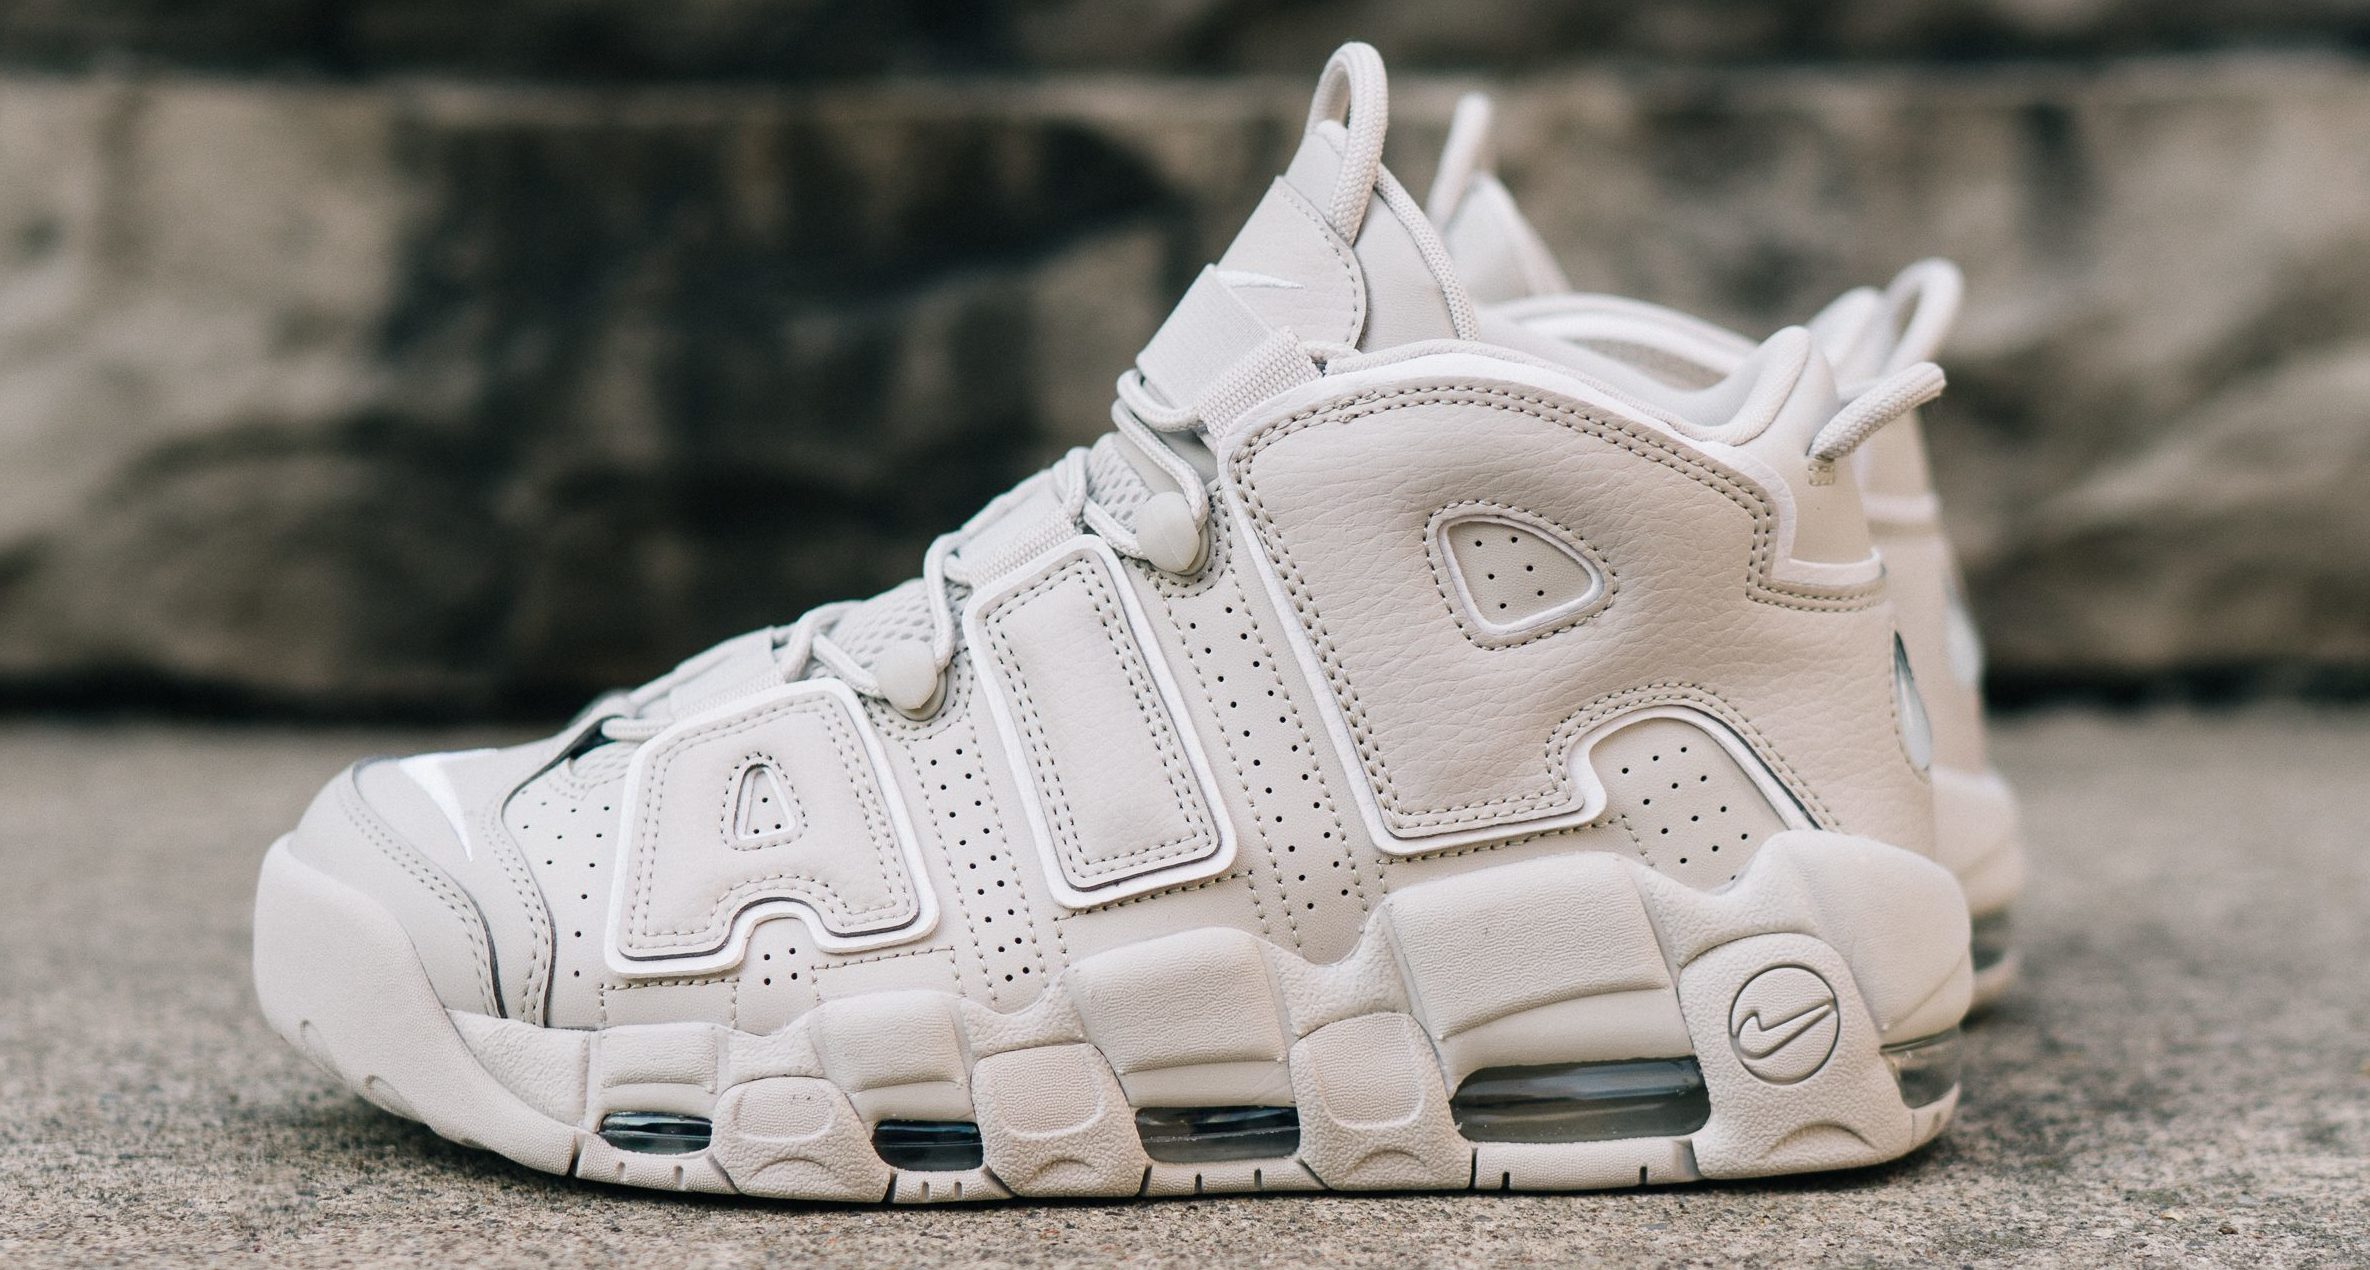 edeb8286f5 Nike Air More Uptempo '96 Light Bone // Available Now